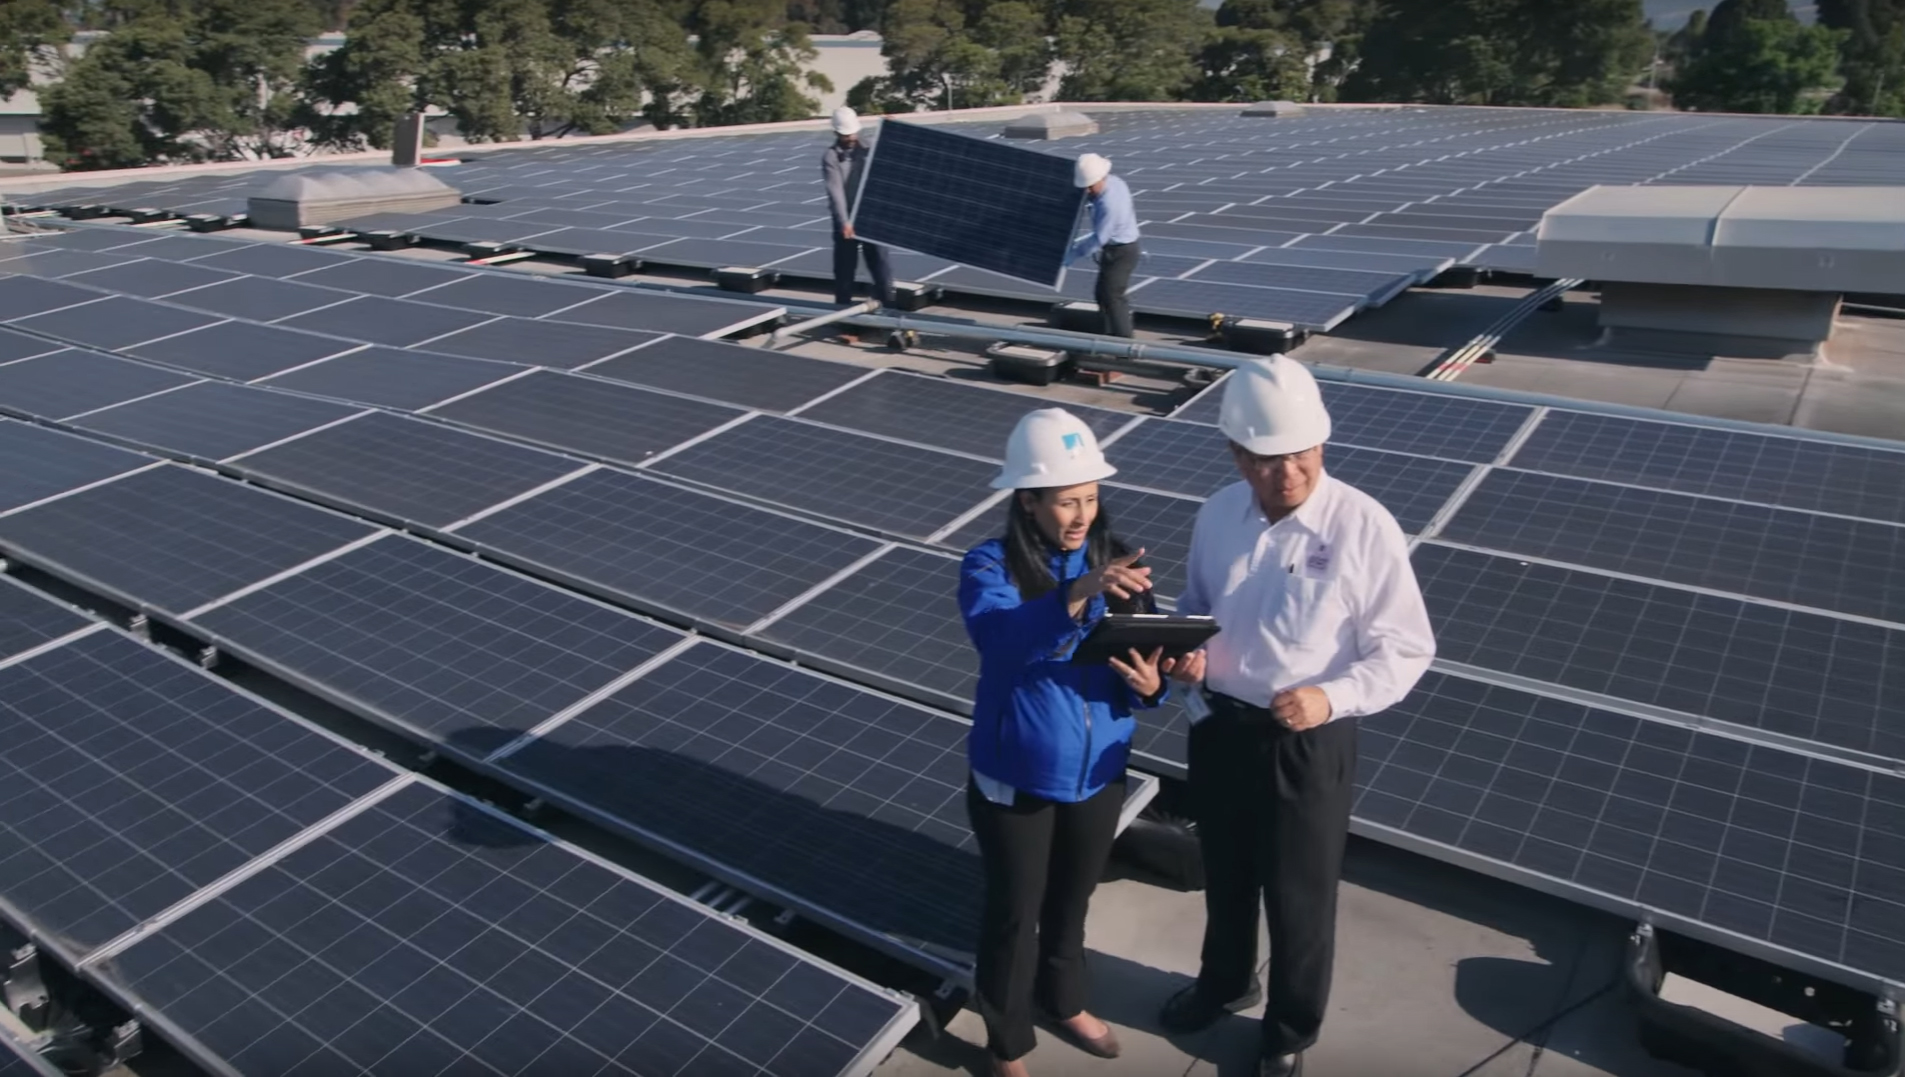 PG&E has connected more than 300,000 solar customers to the energy grid, representing about 25 percent of private rooftop solar in the country. PG&E connects about 5,000 new solar customers to the grid every month. PG&E connects new solar customers to the grid in three business days or less – compared to the industry average of four weeks. Additionally, PG&E's Solar Choice program offers a new way for PG&E customers to go solar – without installing rooftop solar panels. Through the program, residential and business customers can go solar by purchasing up to 100 percent of their electricity from solar energy generated in PG&E's service area.